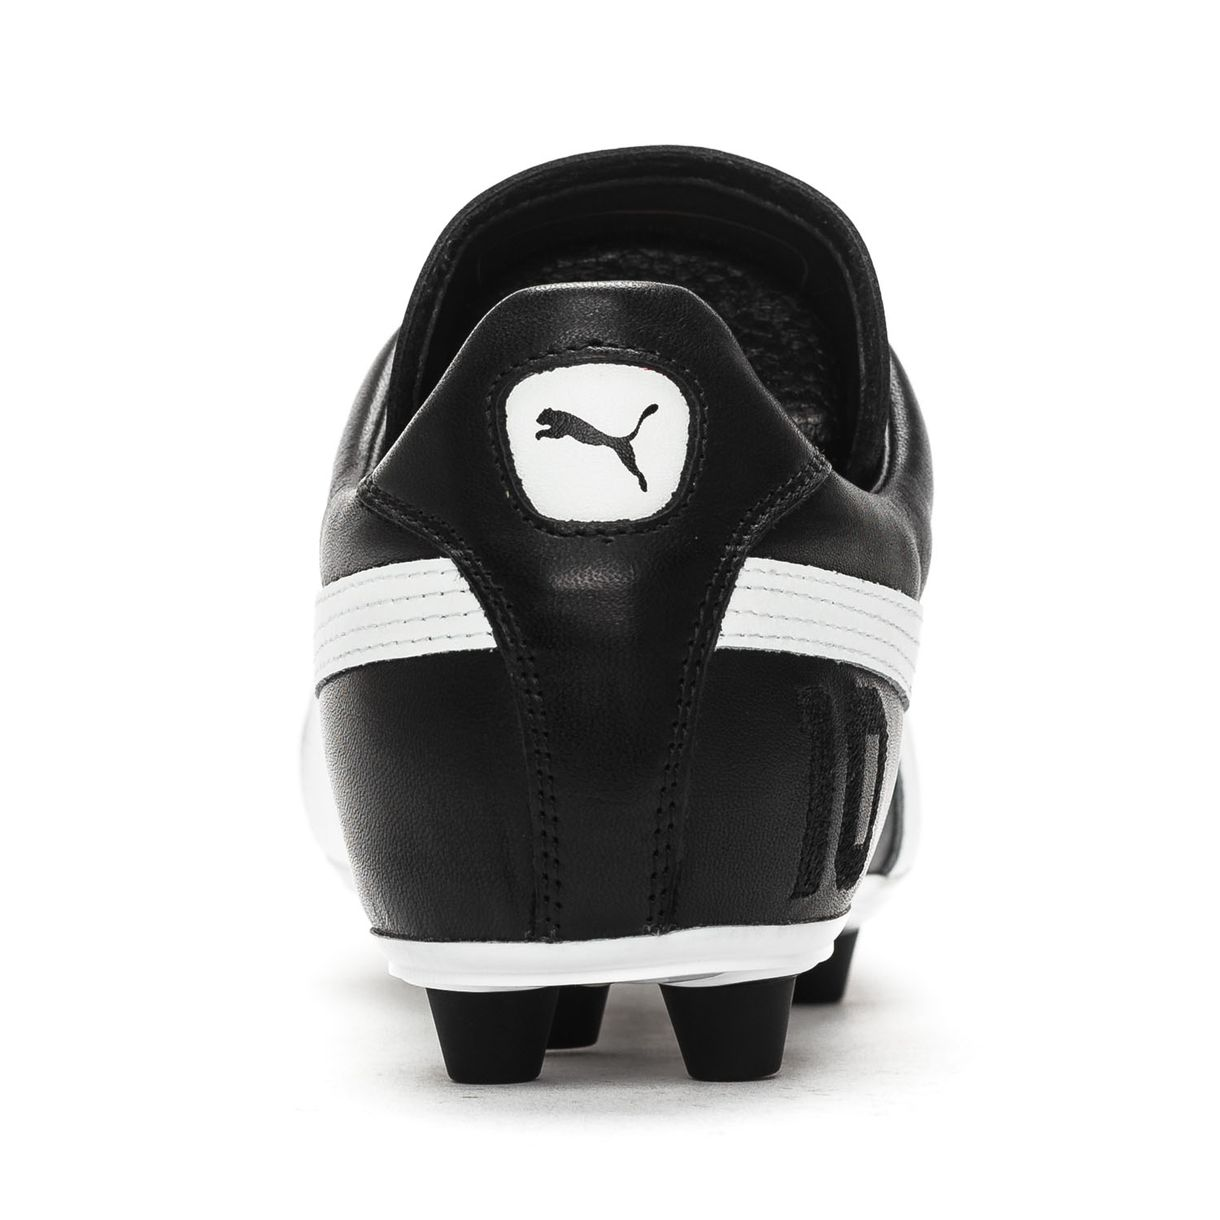 Puma Maradona Super FG back